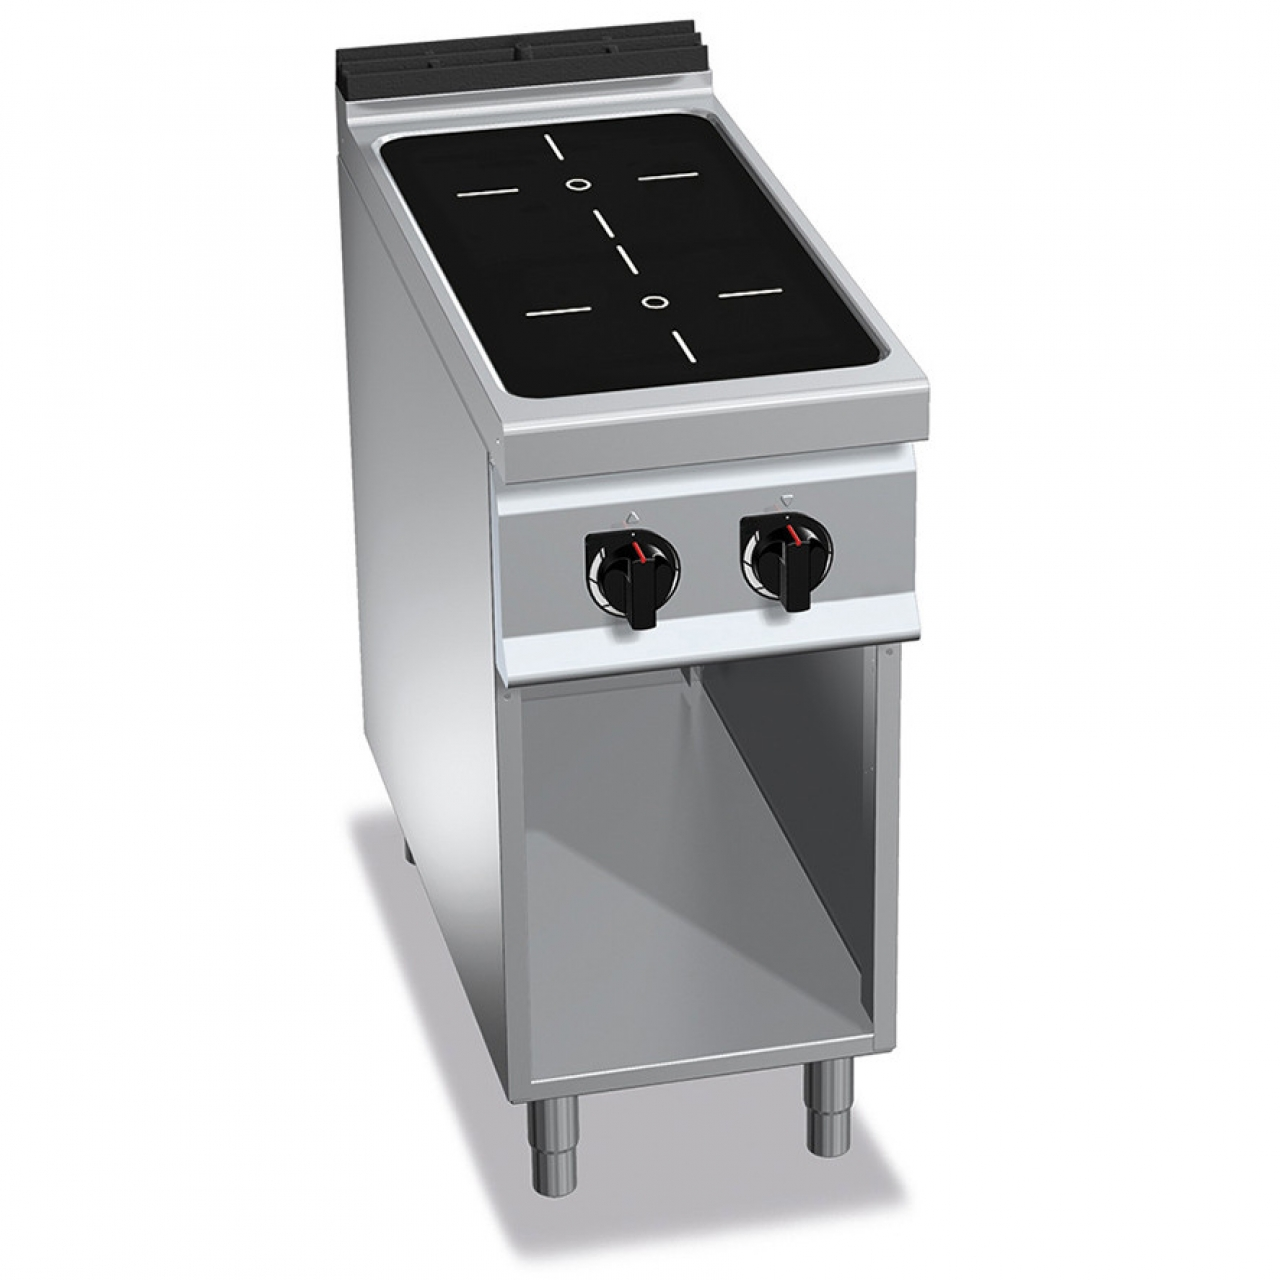 Induction cooker 10kW